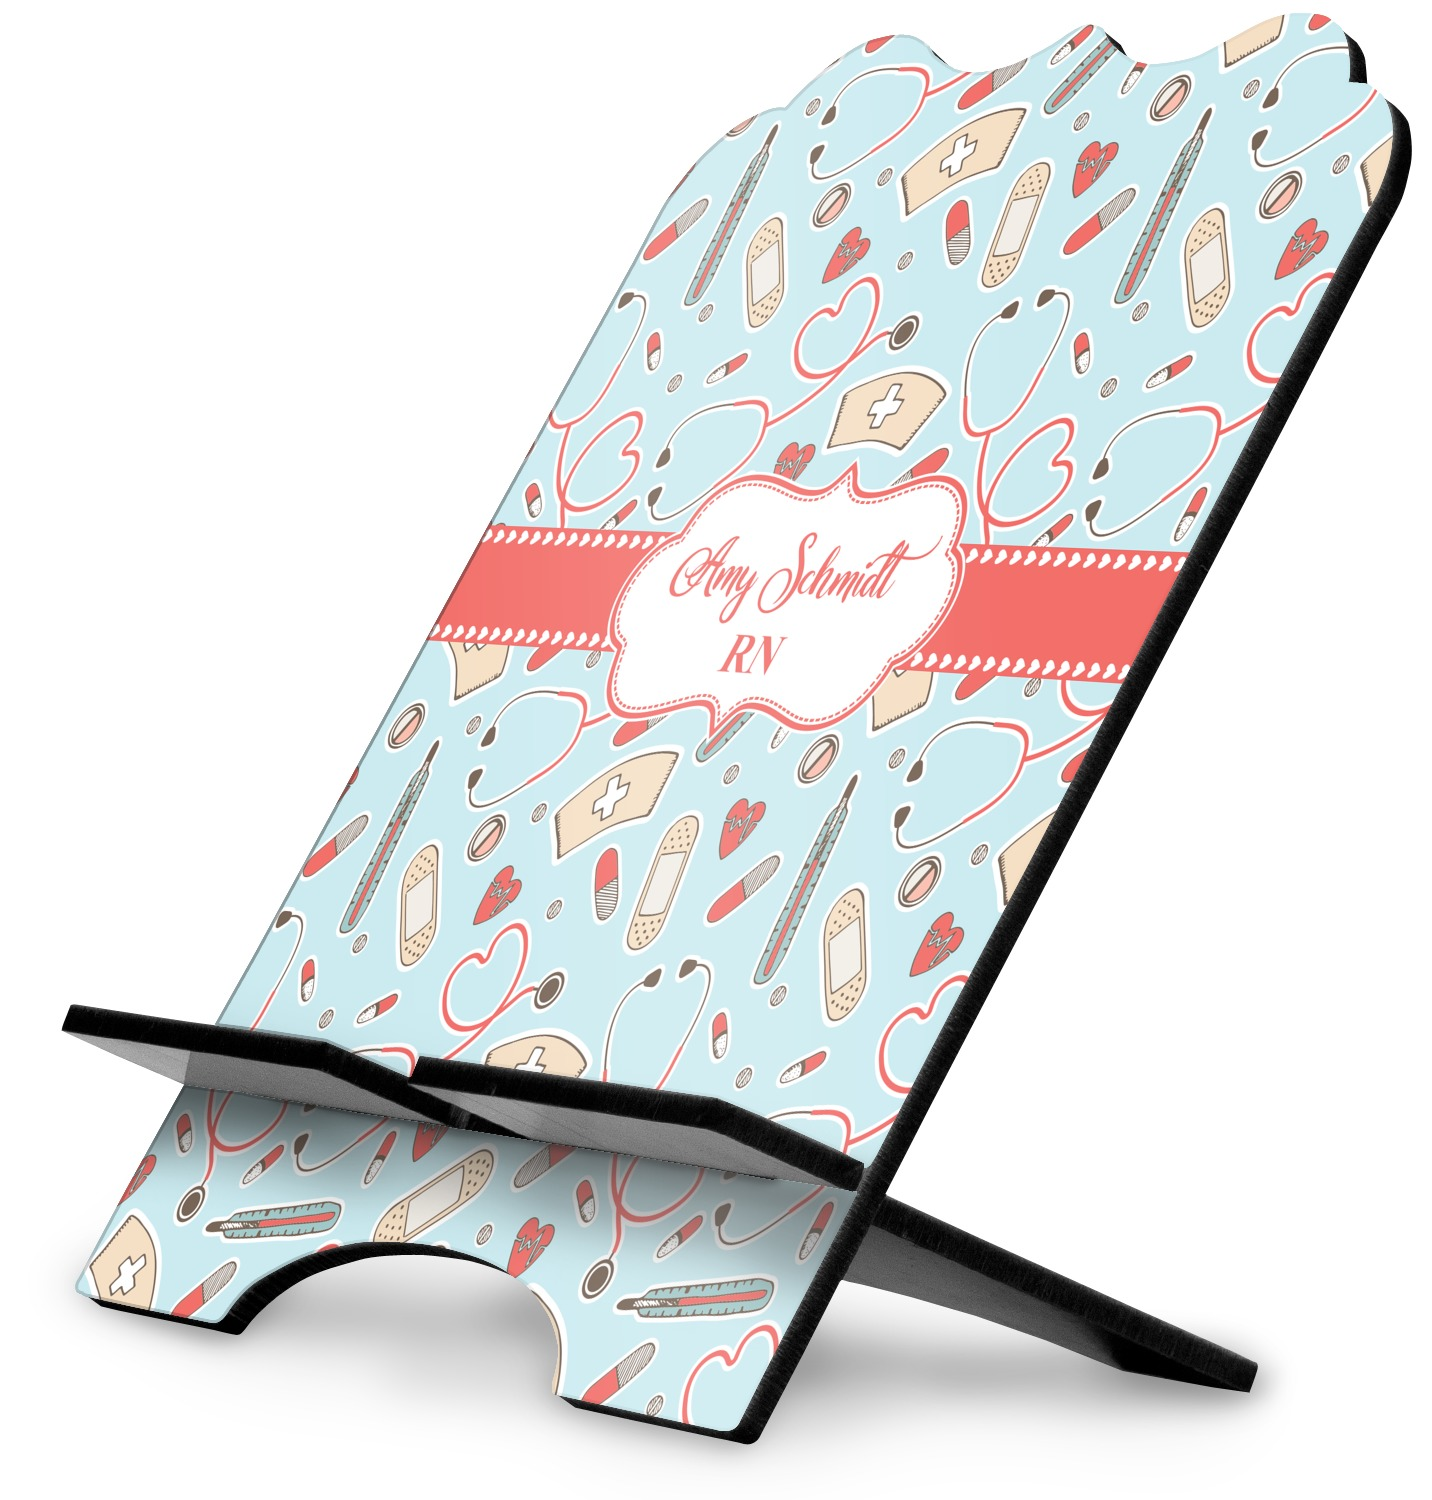 Nurse Stylized Tablet Stand (Personalized) - YouCustomizeIt